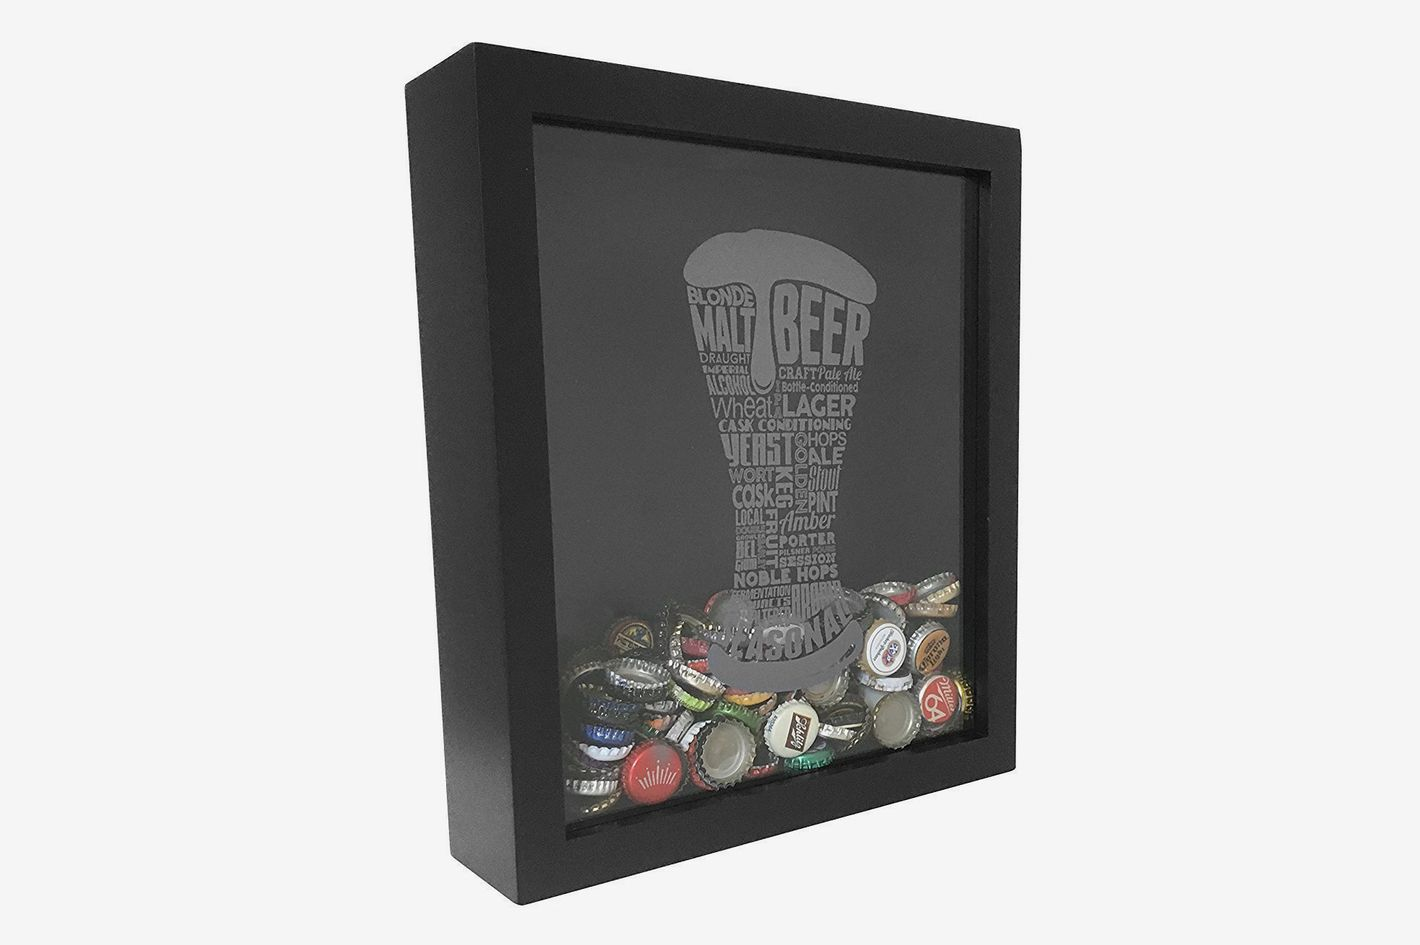 Proper Pour Beer Bottle Cap Holder Shadow Box